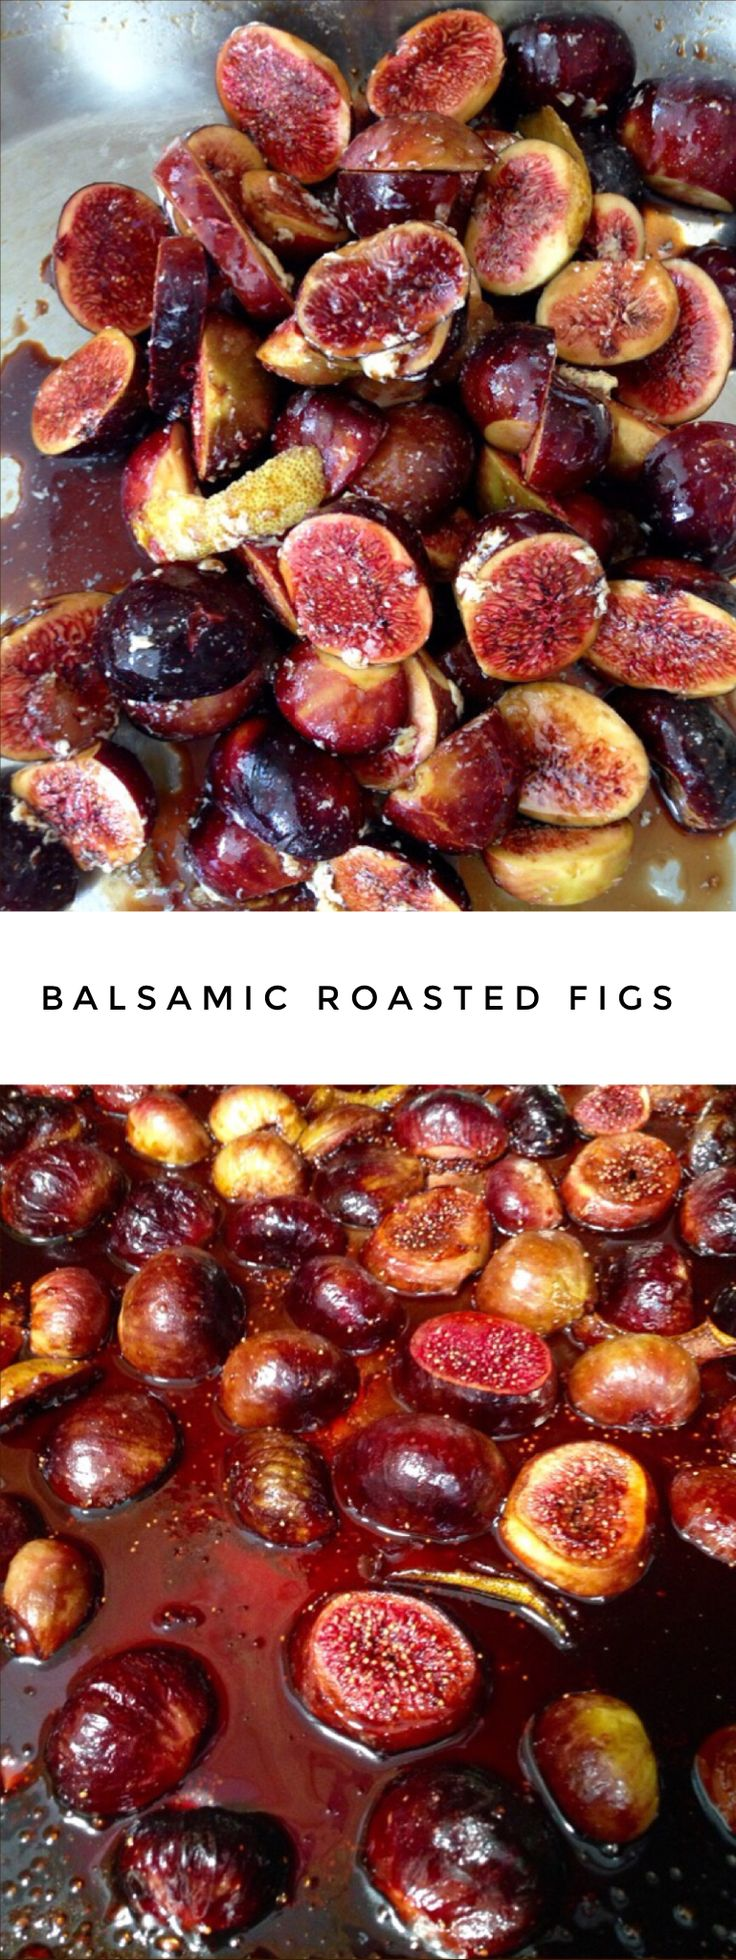 Balsamic Roasted Figs Recipe | CiaoFlorentina.com @CiaoFlorentina                                                                                                                                                                                 More